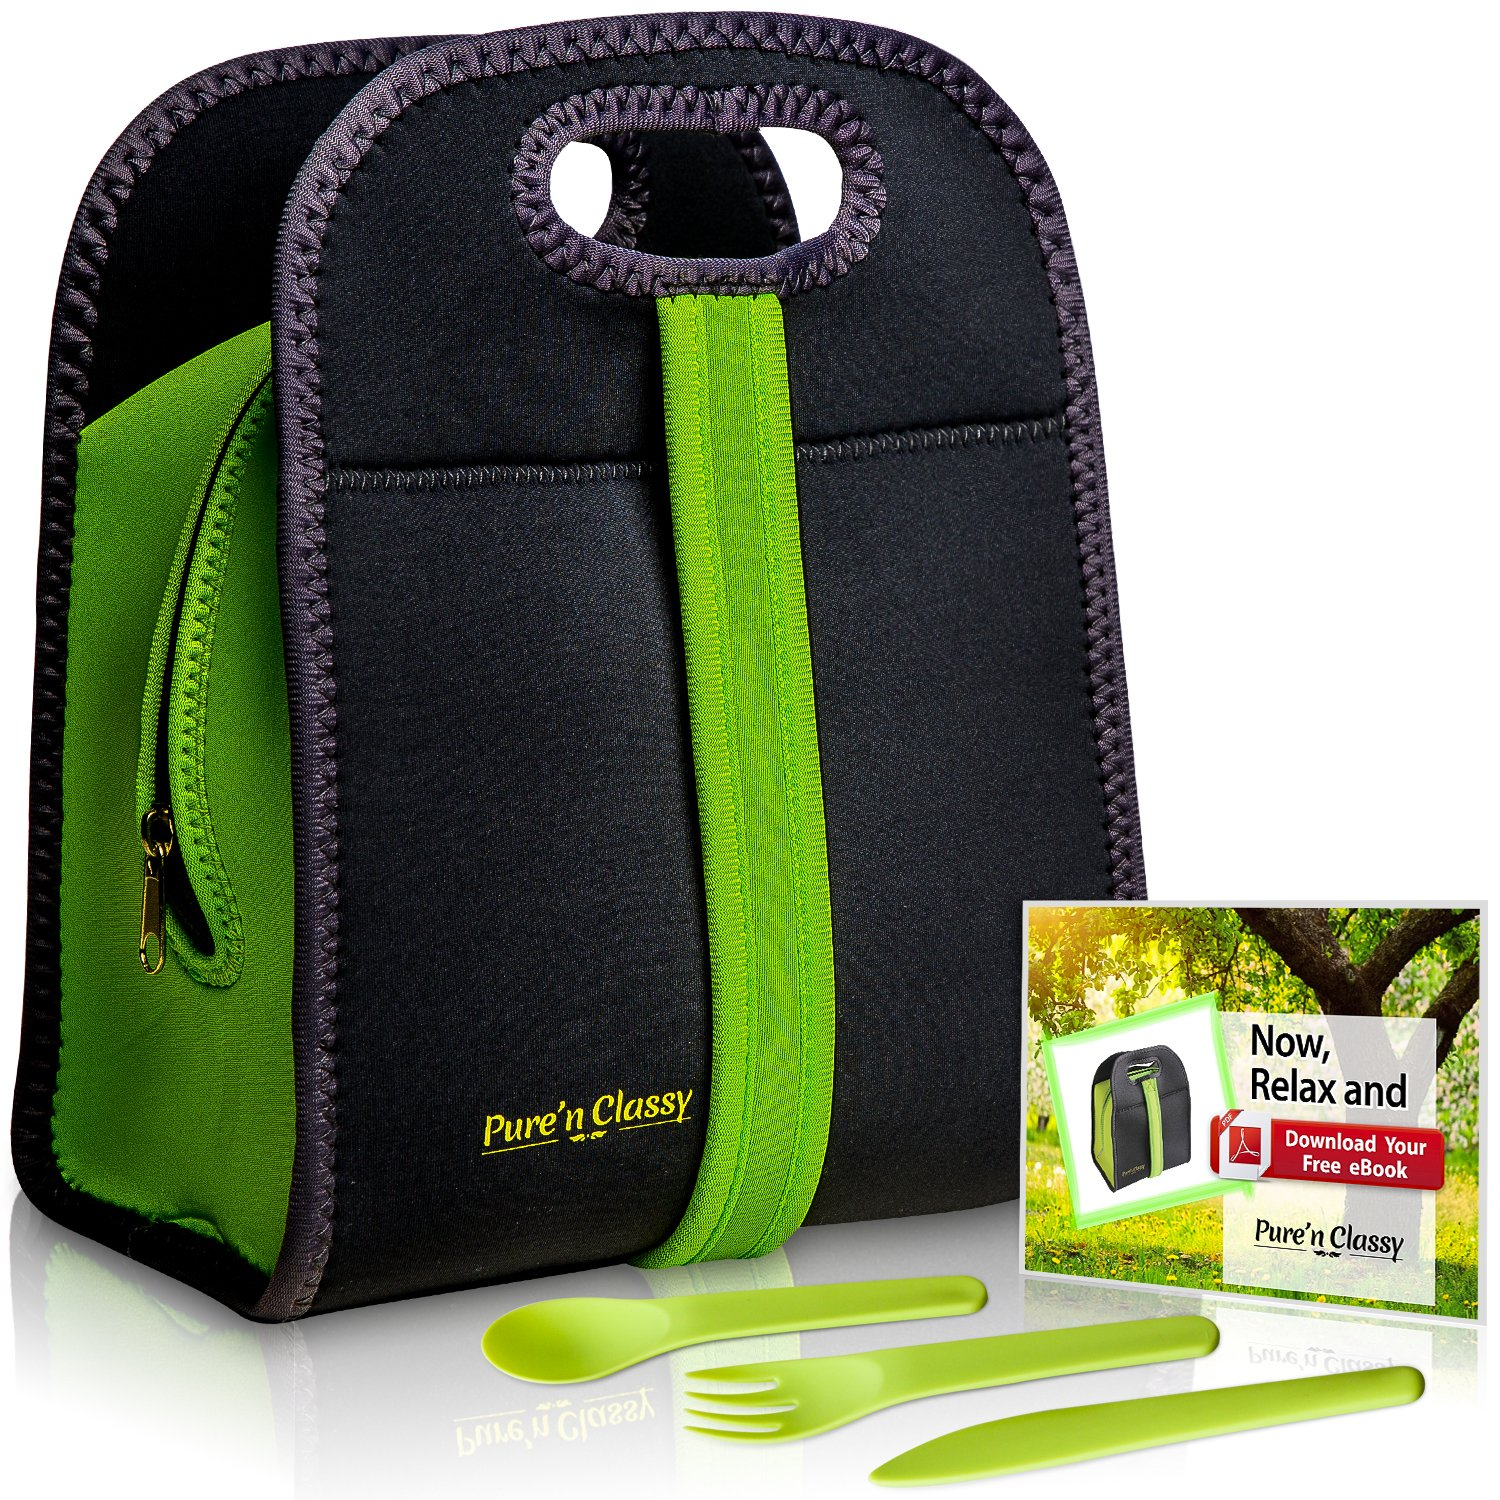 Neoprene Lunch Bag For Women, Kids, Men & Cutlery Set Bundle - Premium Eco Friendly Insulated Lunch Tote - Washable & Reusable Fashionable Lunch Bag - 100 of America's Favorite Sandwiches eBook Incl. by Pure'n Classy